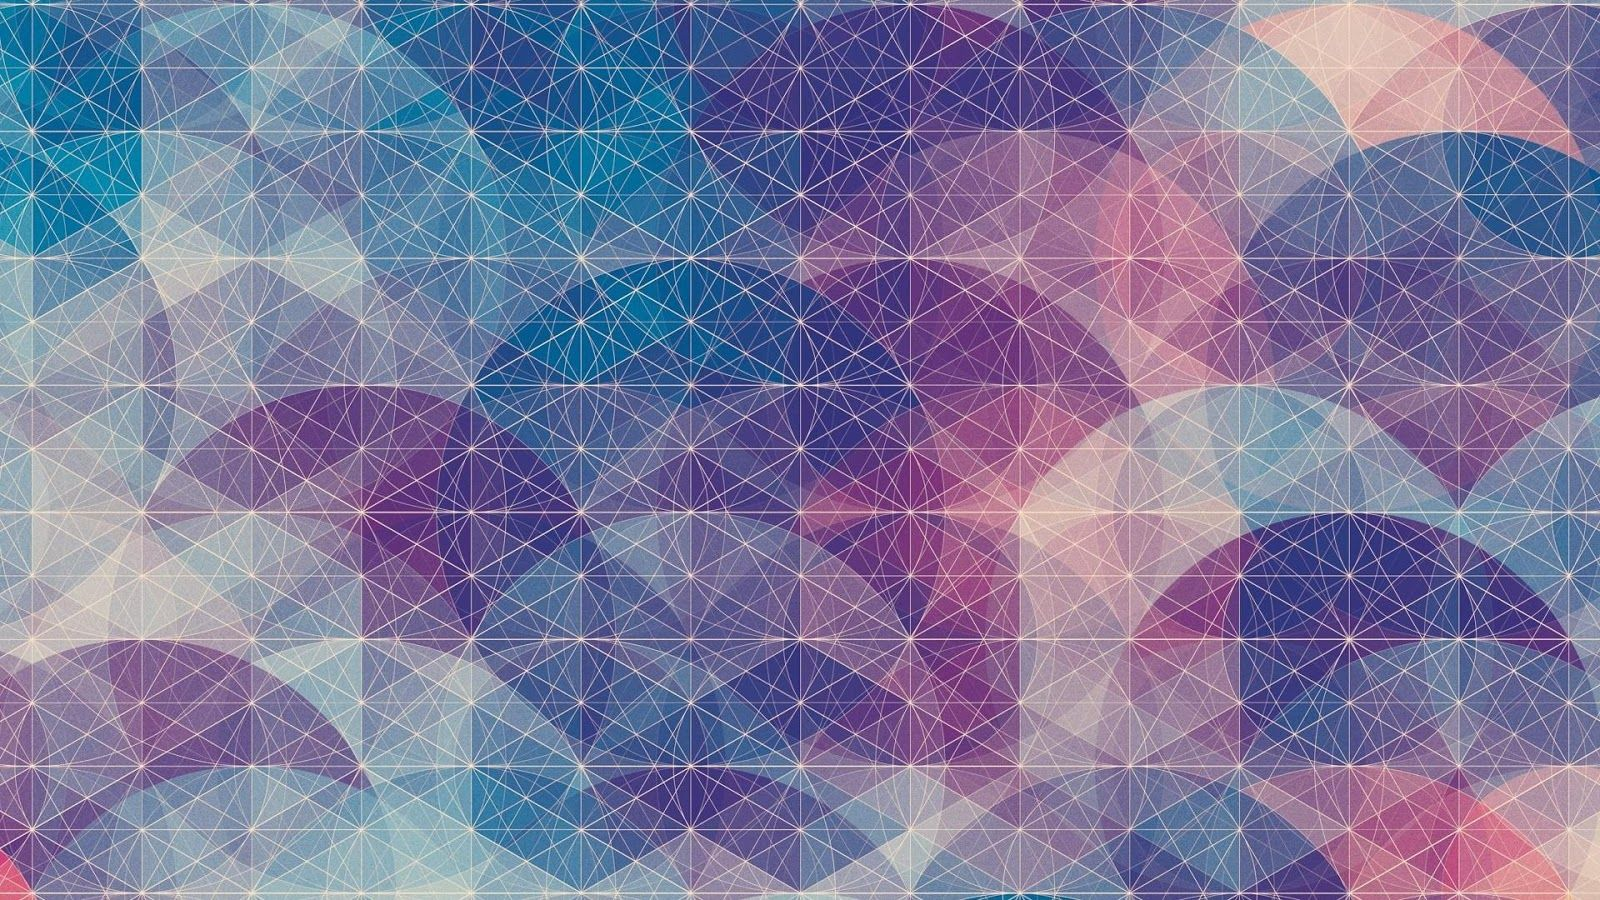 Hd geometric wallpaper android apps on google play Geometric patterns